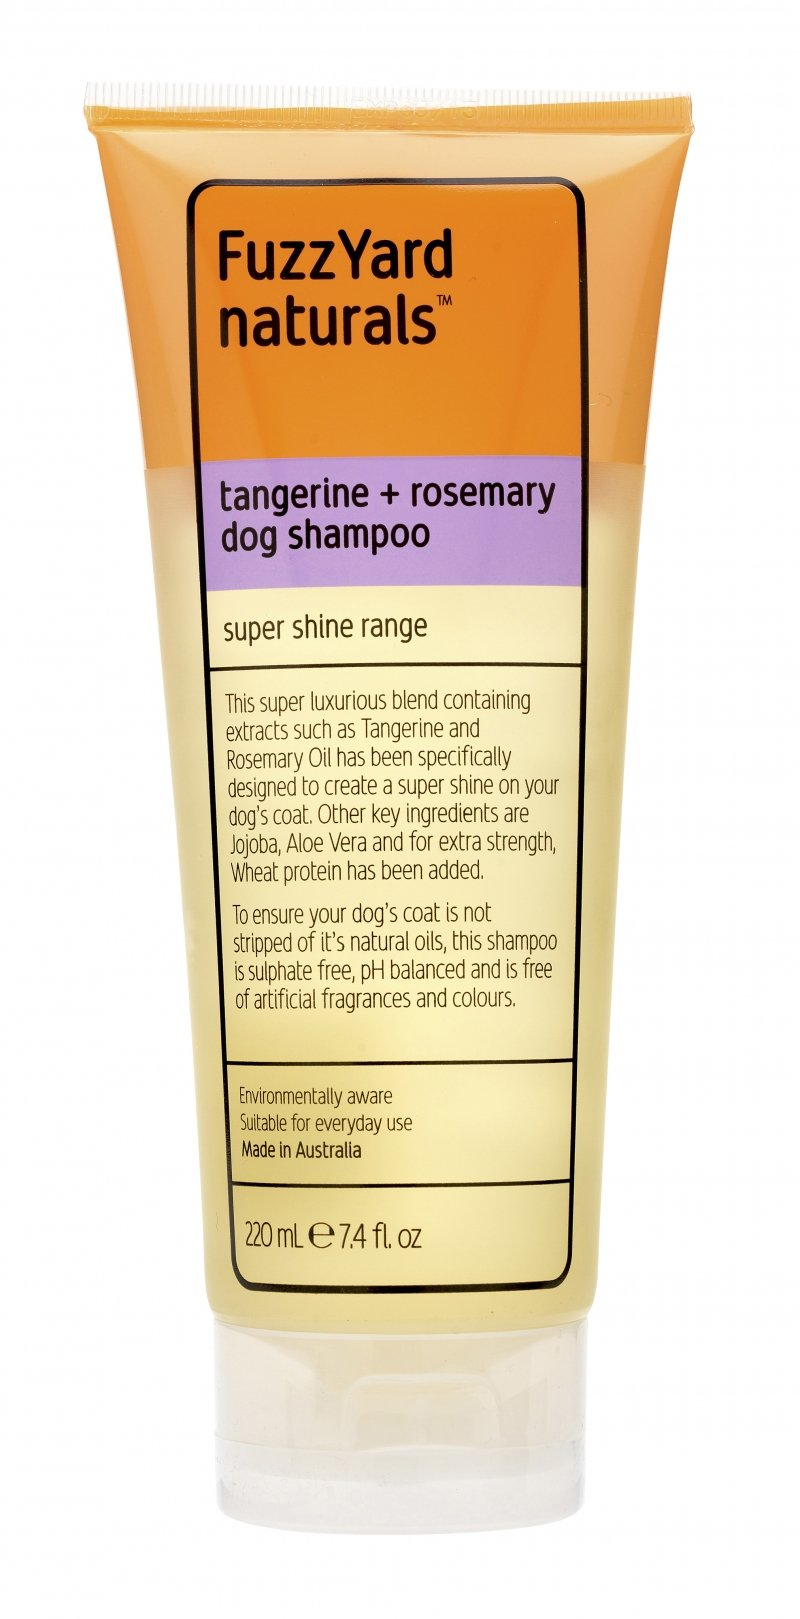 Super Shine Dog Shampoo Shampoo Tangerine + Rosemary 220ml